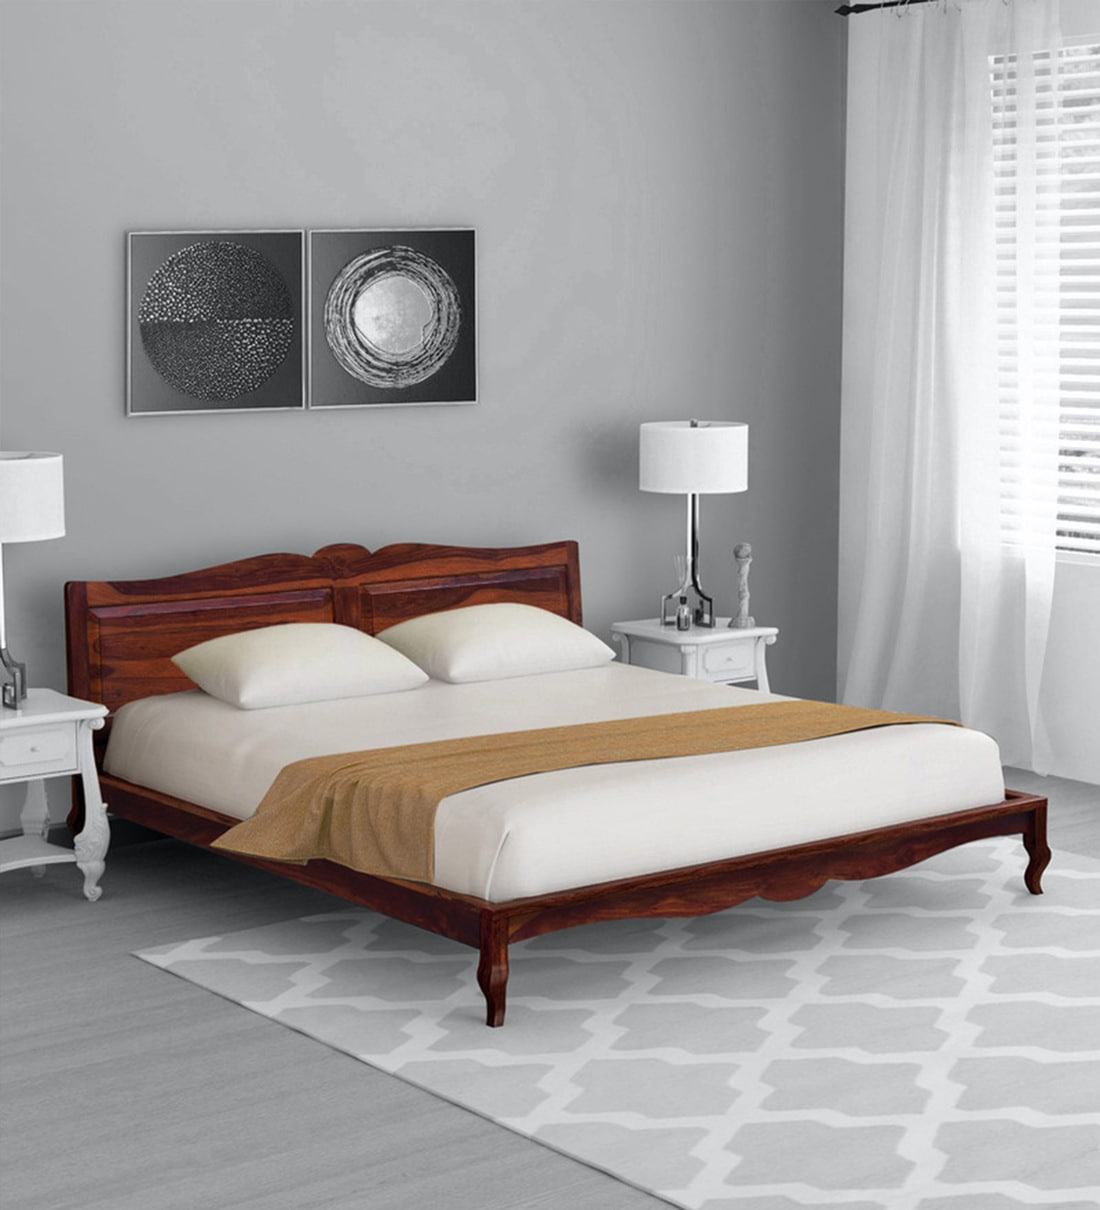 Buy Anne Solid Wood Queen Size Bed In Honey Oak Finish Amberville By Pepperfry Online Traditional Queen Size Beds Beds Furniture Pepperfry Product